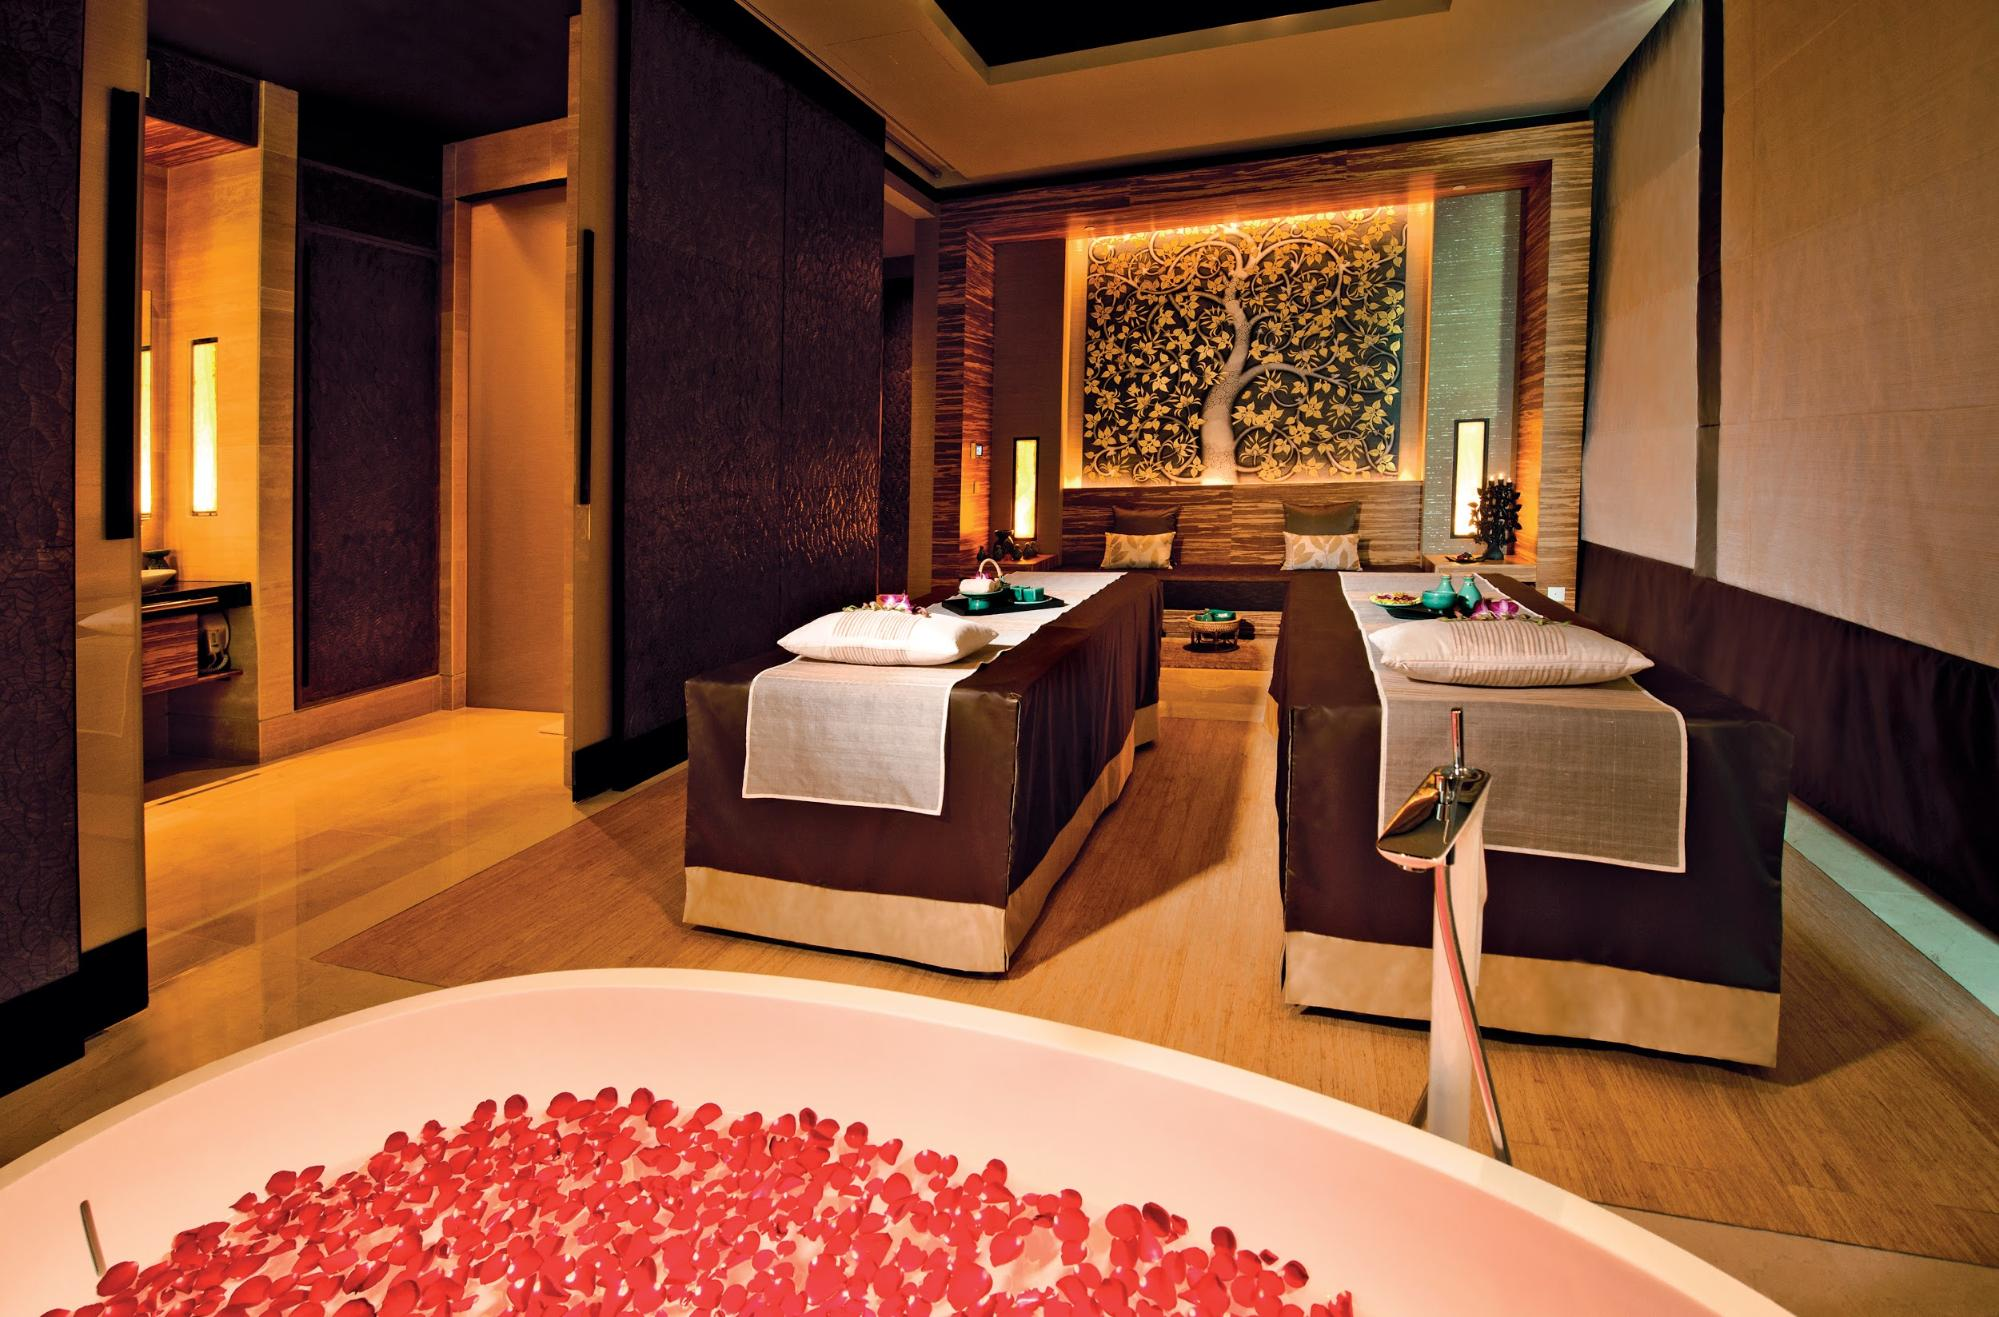 12 Amazing Hotel Spas in Singapore that will Rejuvenate Your Soul